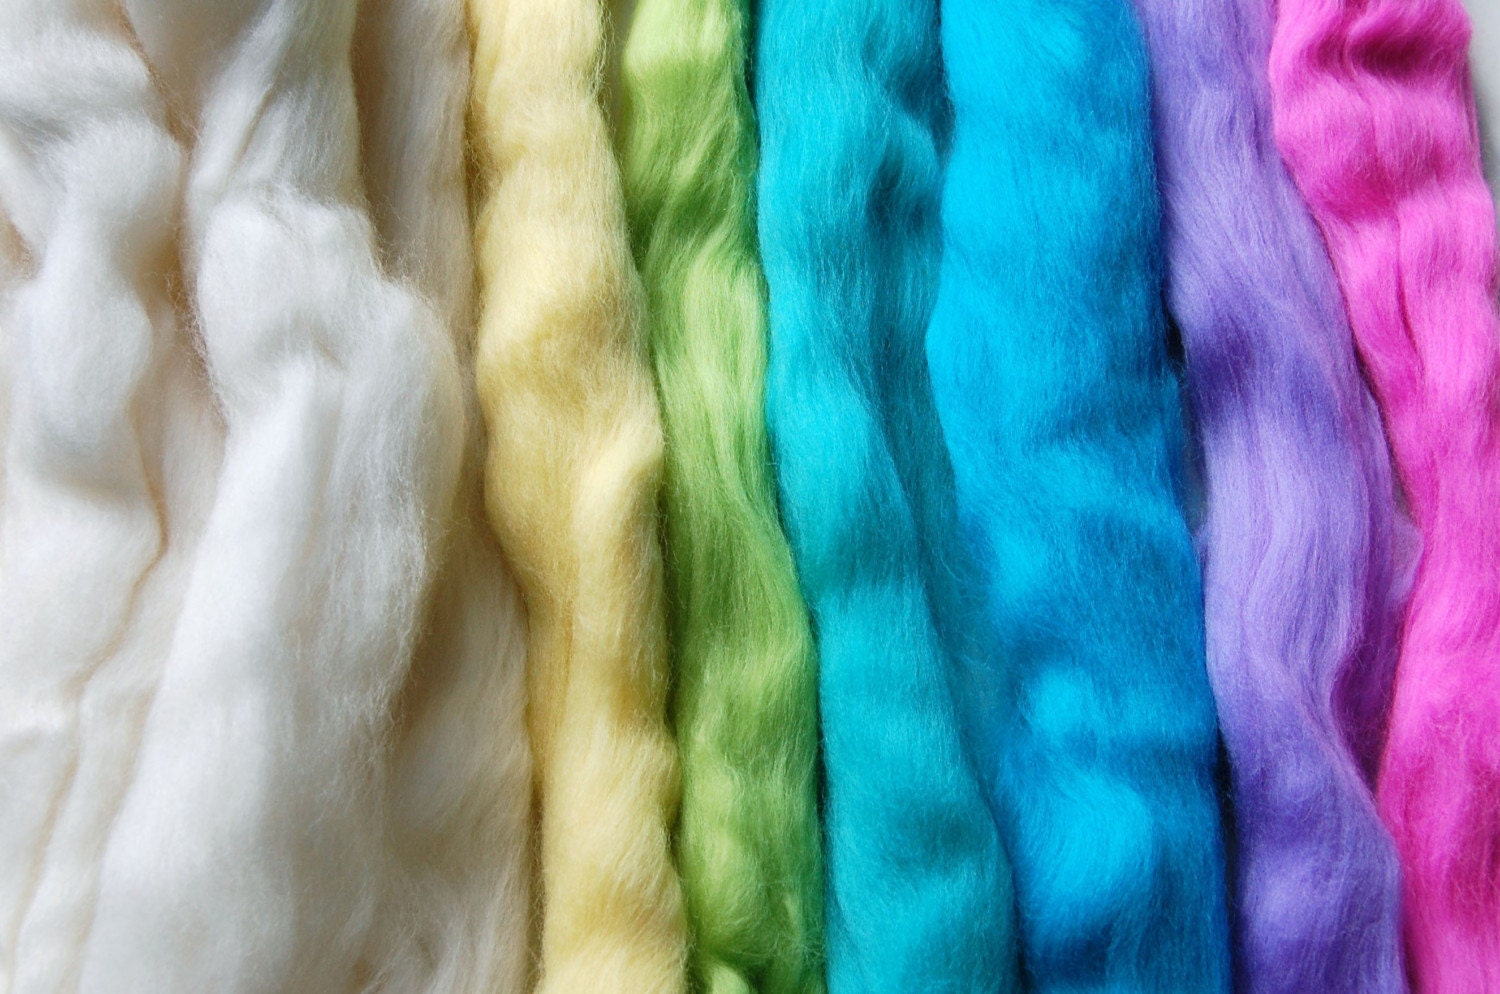 Spring Rainbow - Feltmaking Mix - A beautiful assortment of merino tops/roving for felting/spinning/craft kit.